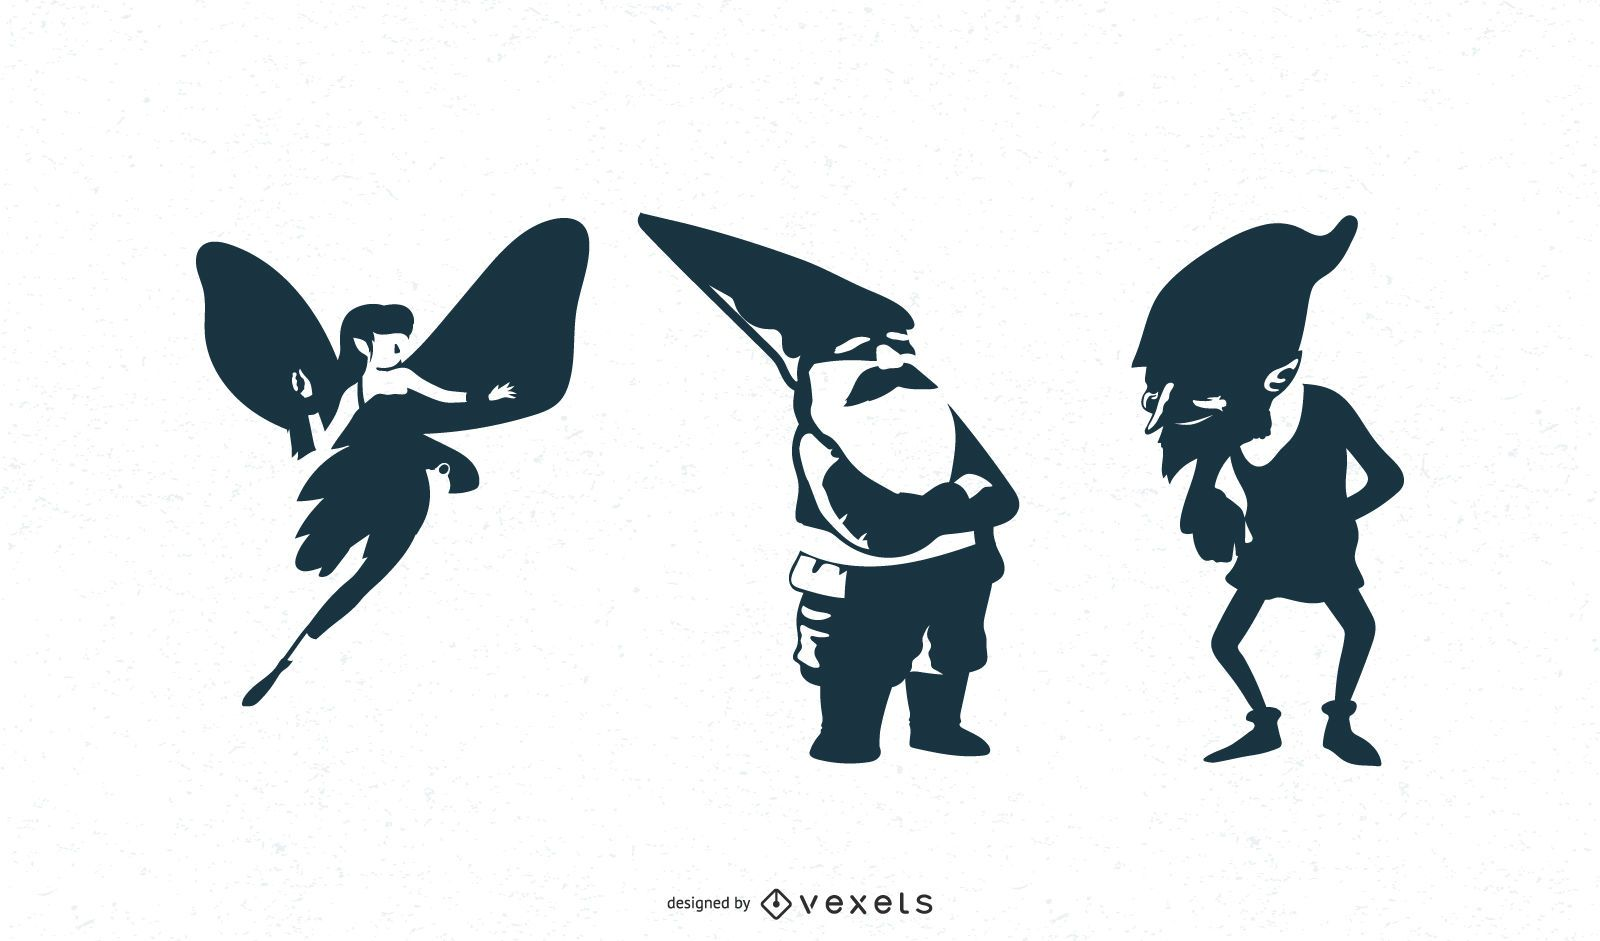 Fantasy character silhouettes